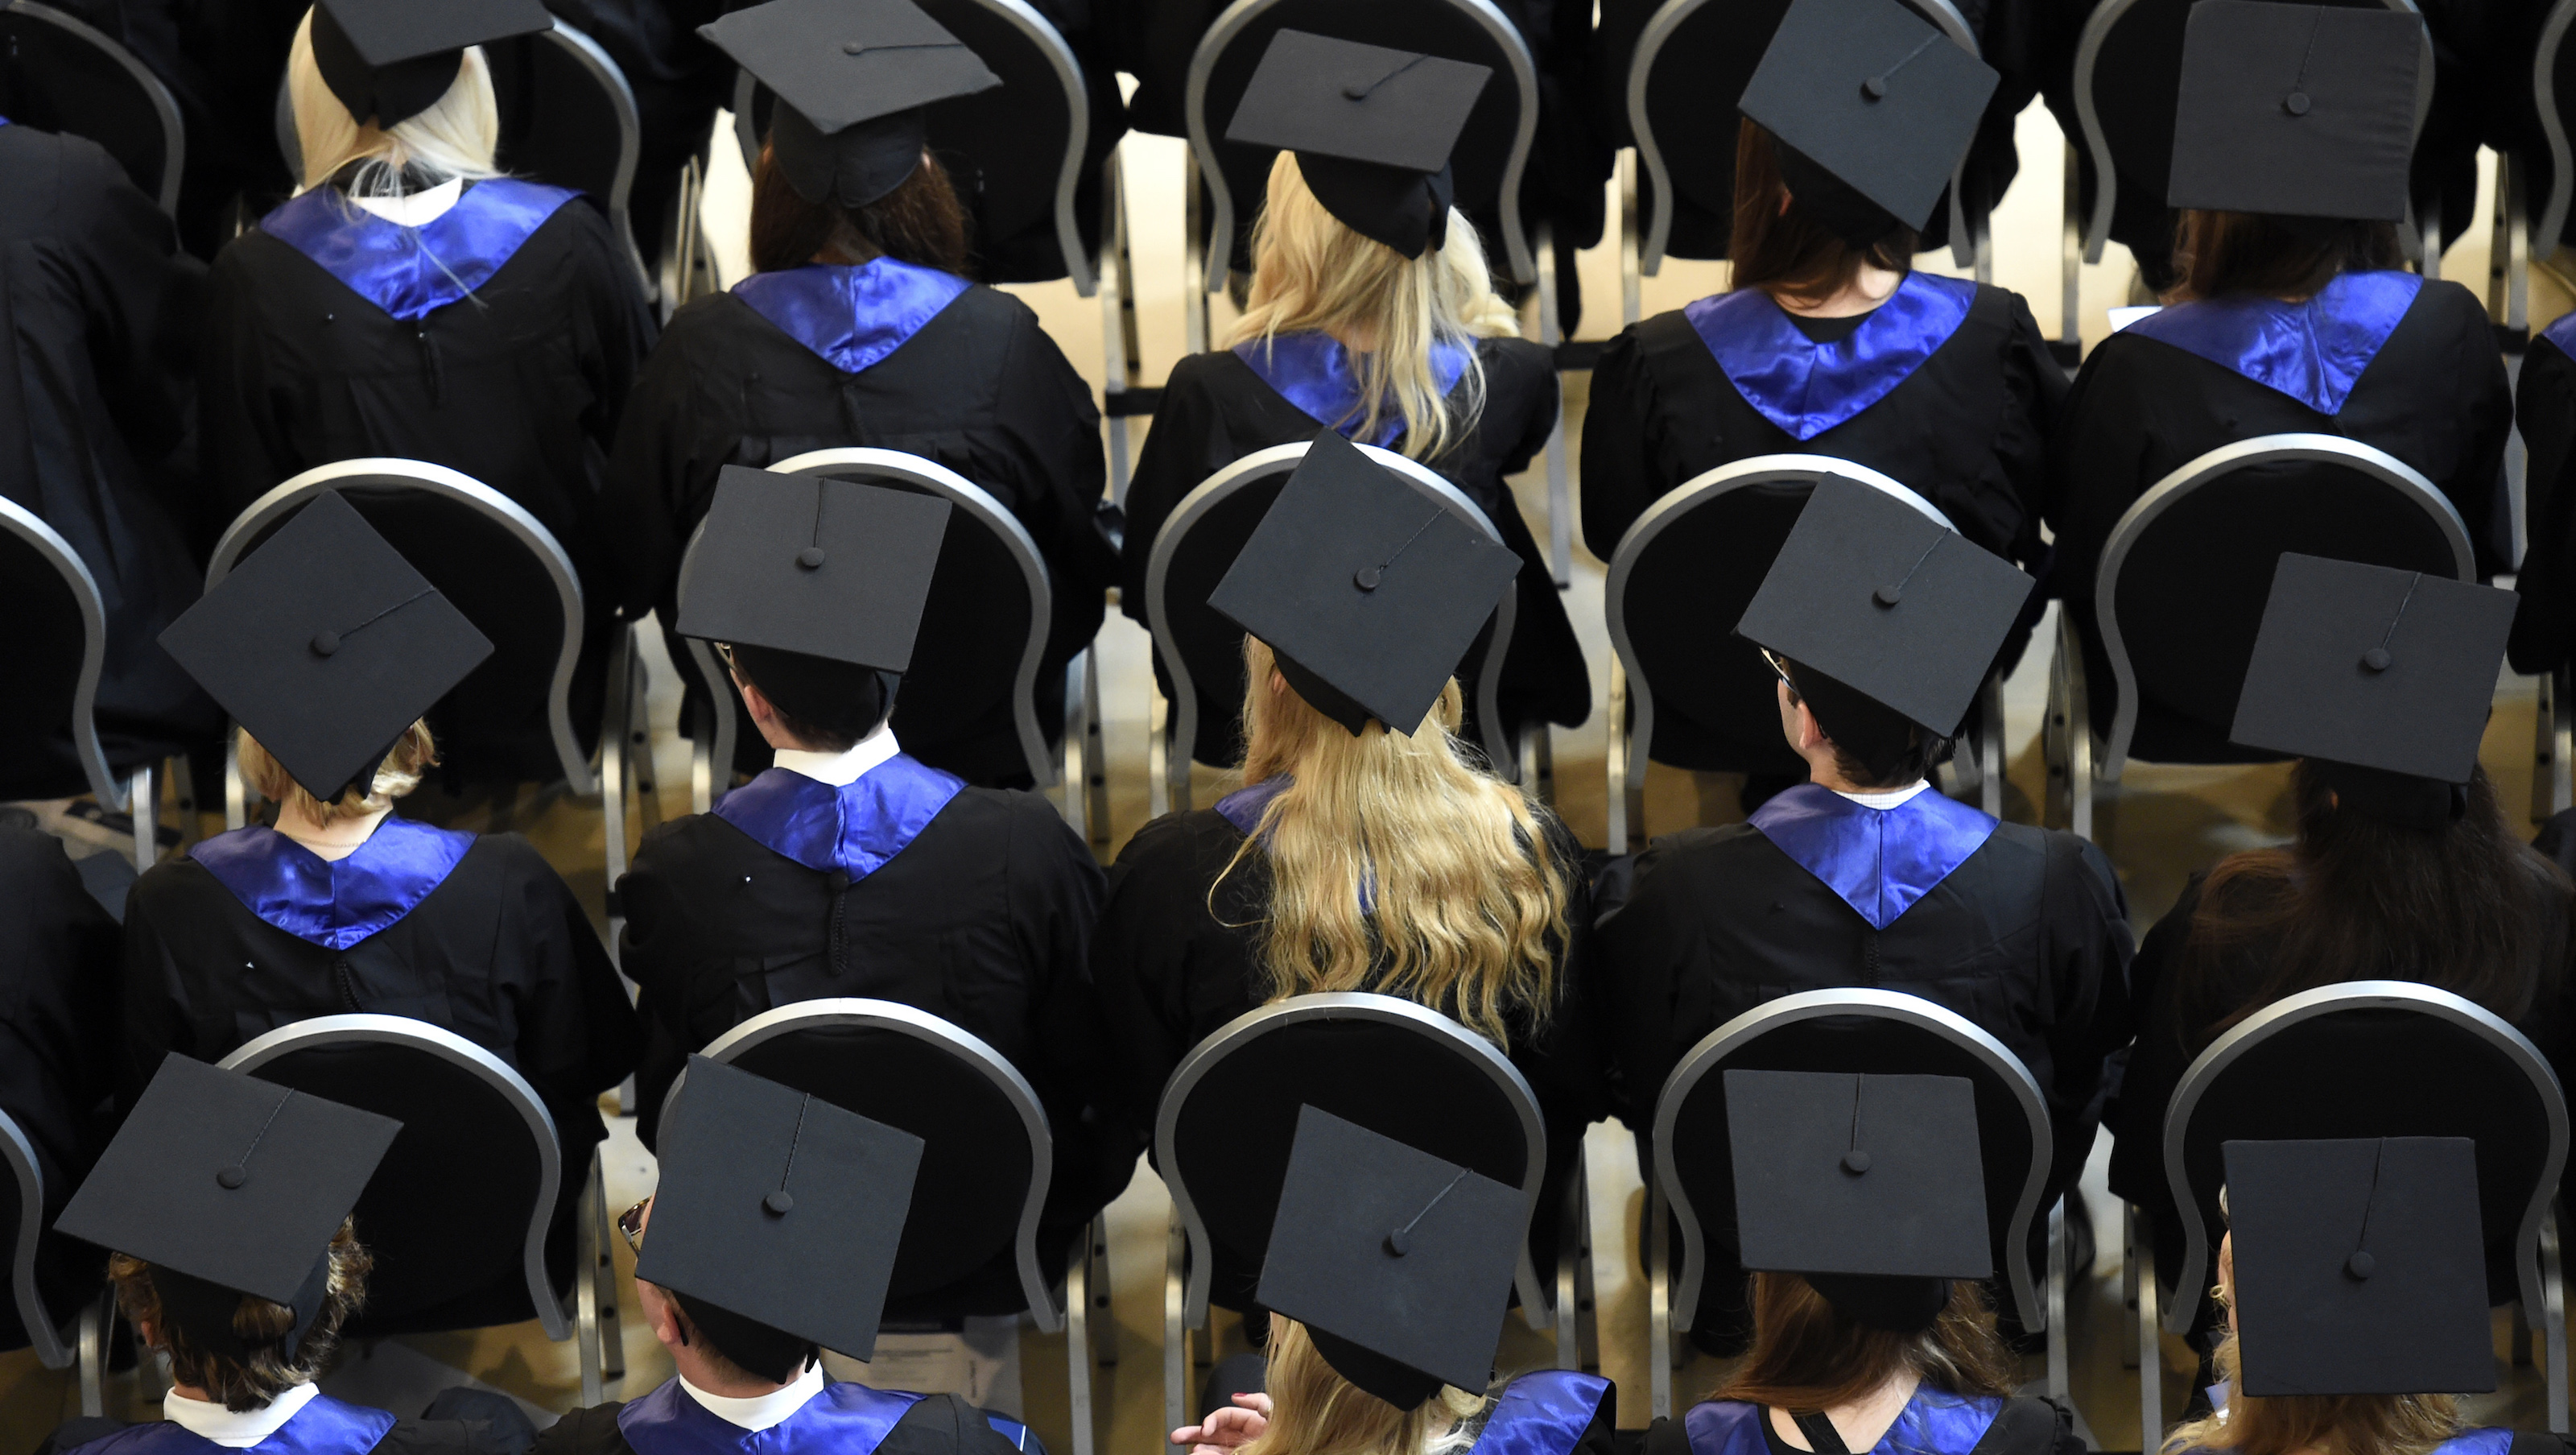 Students attend their graduation ceremony at the Hamburg School of Business Administration (HSBA) in Hamburg, October 1, 2014.  REUTERS/Fabian Bimmer (GERMANY - Tags: BUSINESS EDUCATION SOCIETY) - GM1EAA2052G01